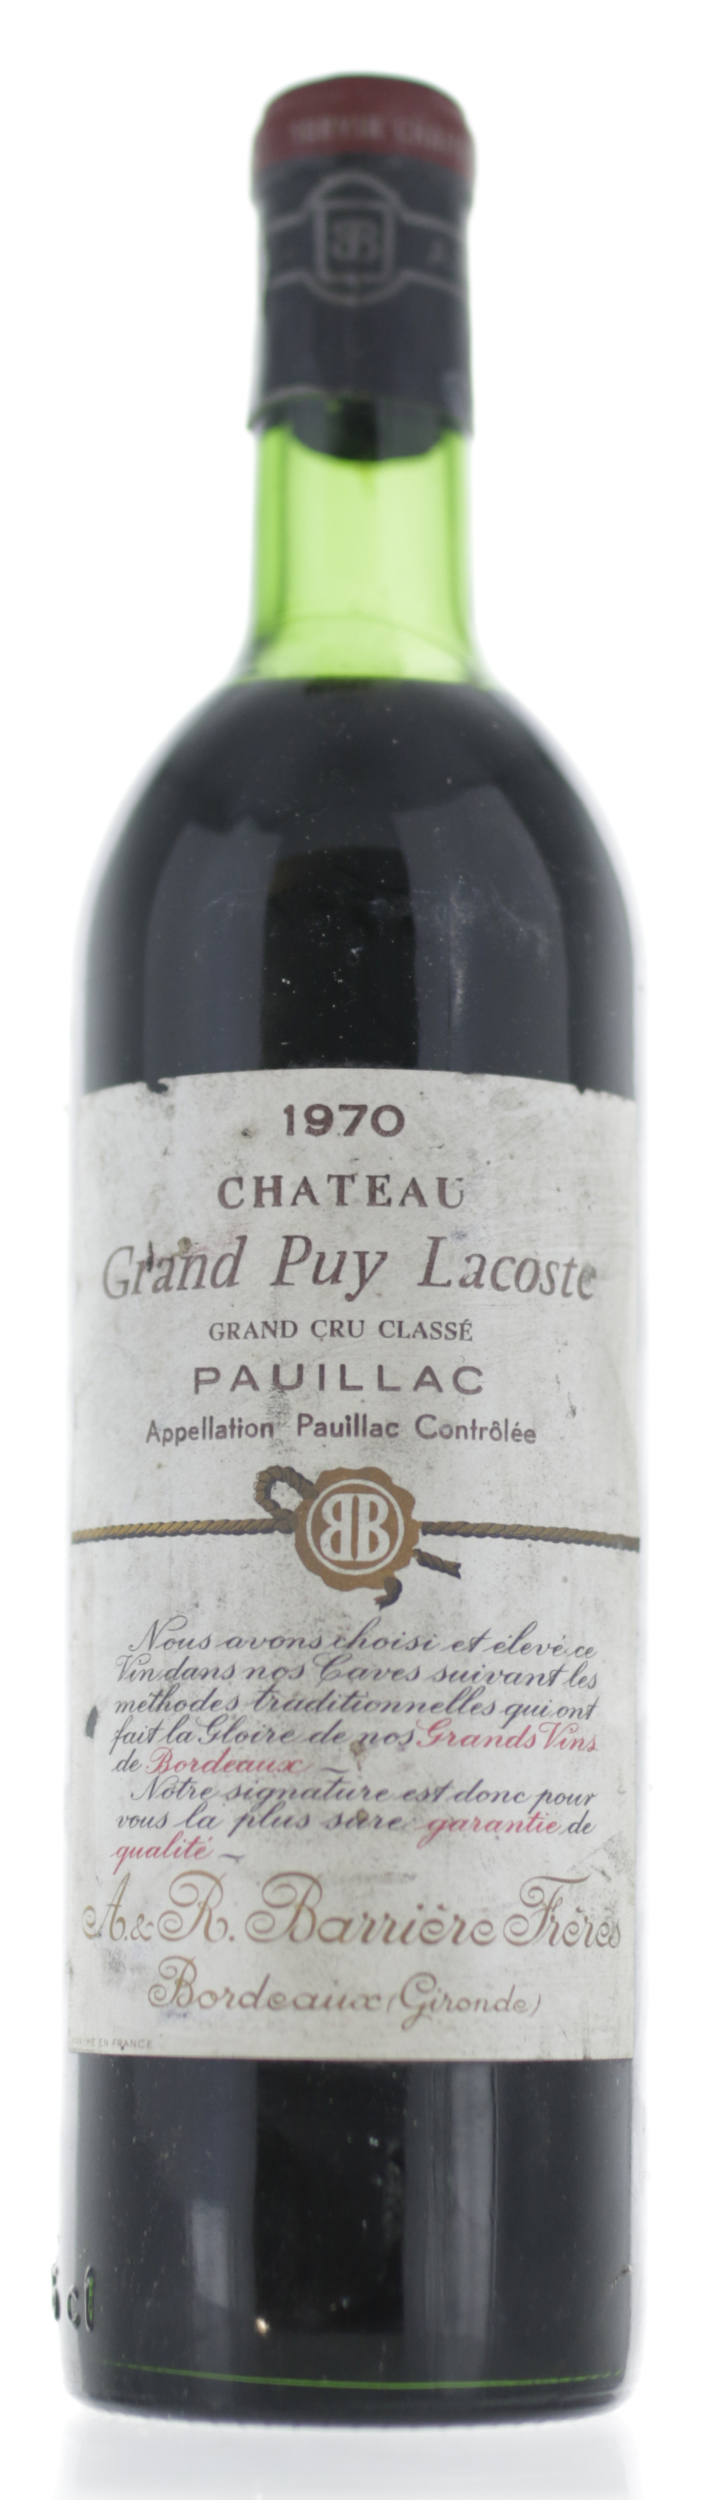 Pauillac - Grand Puy Lacoste - 1970